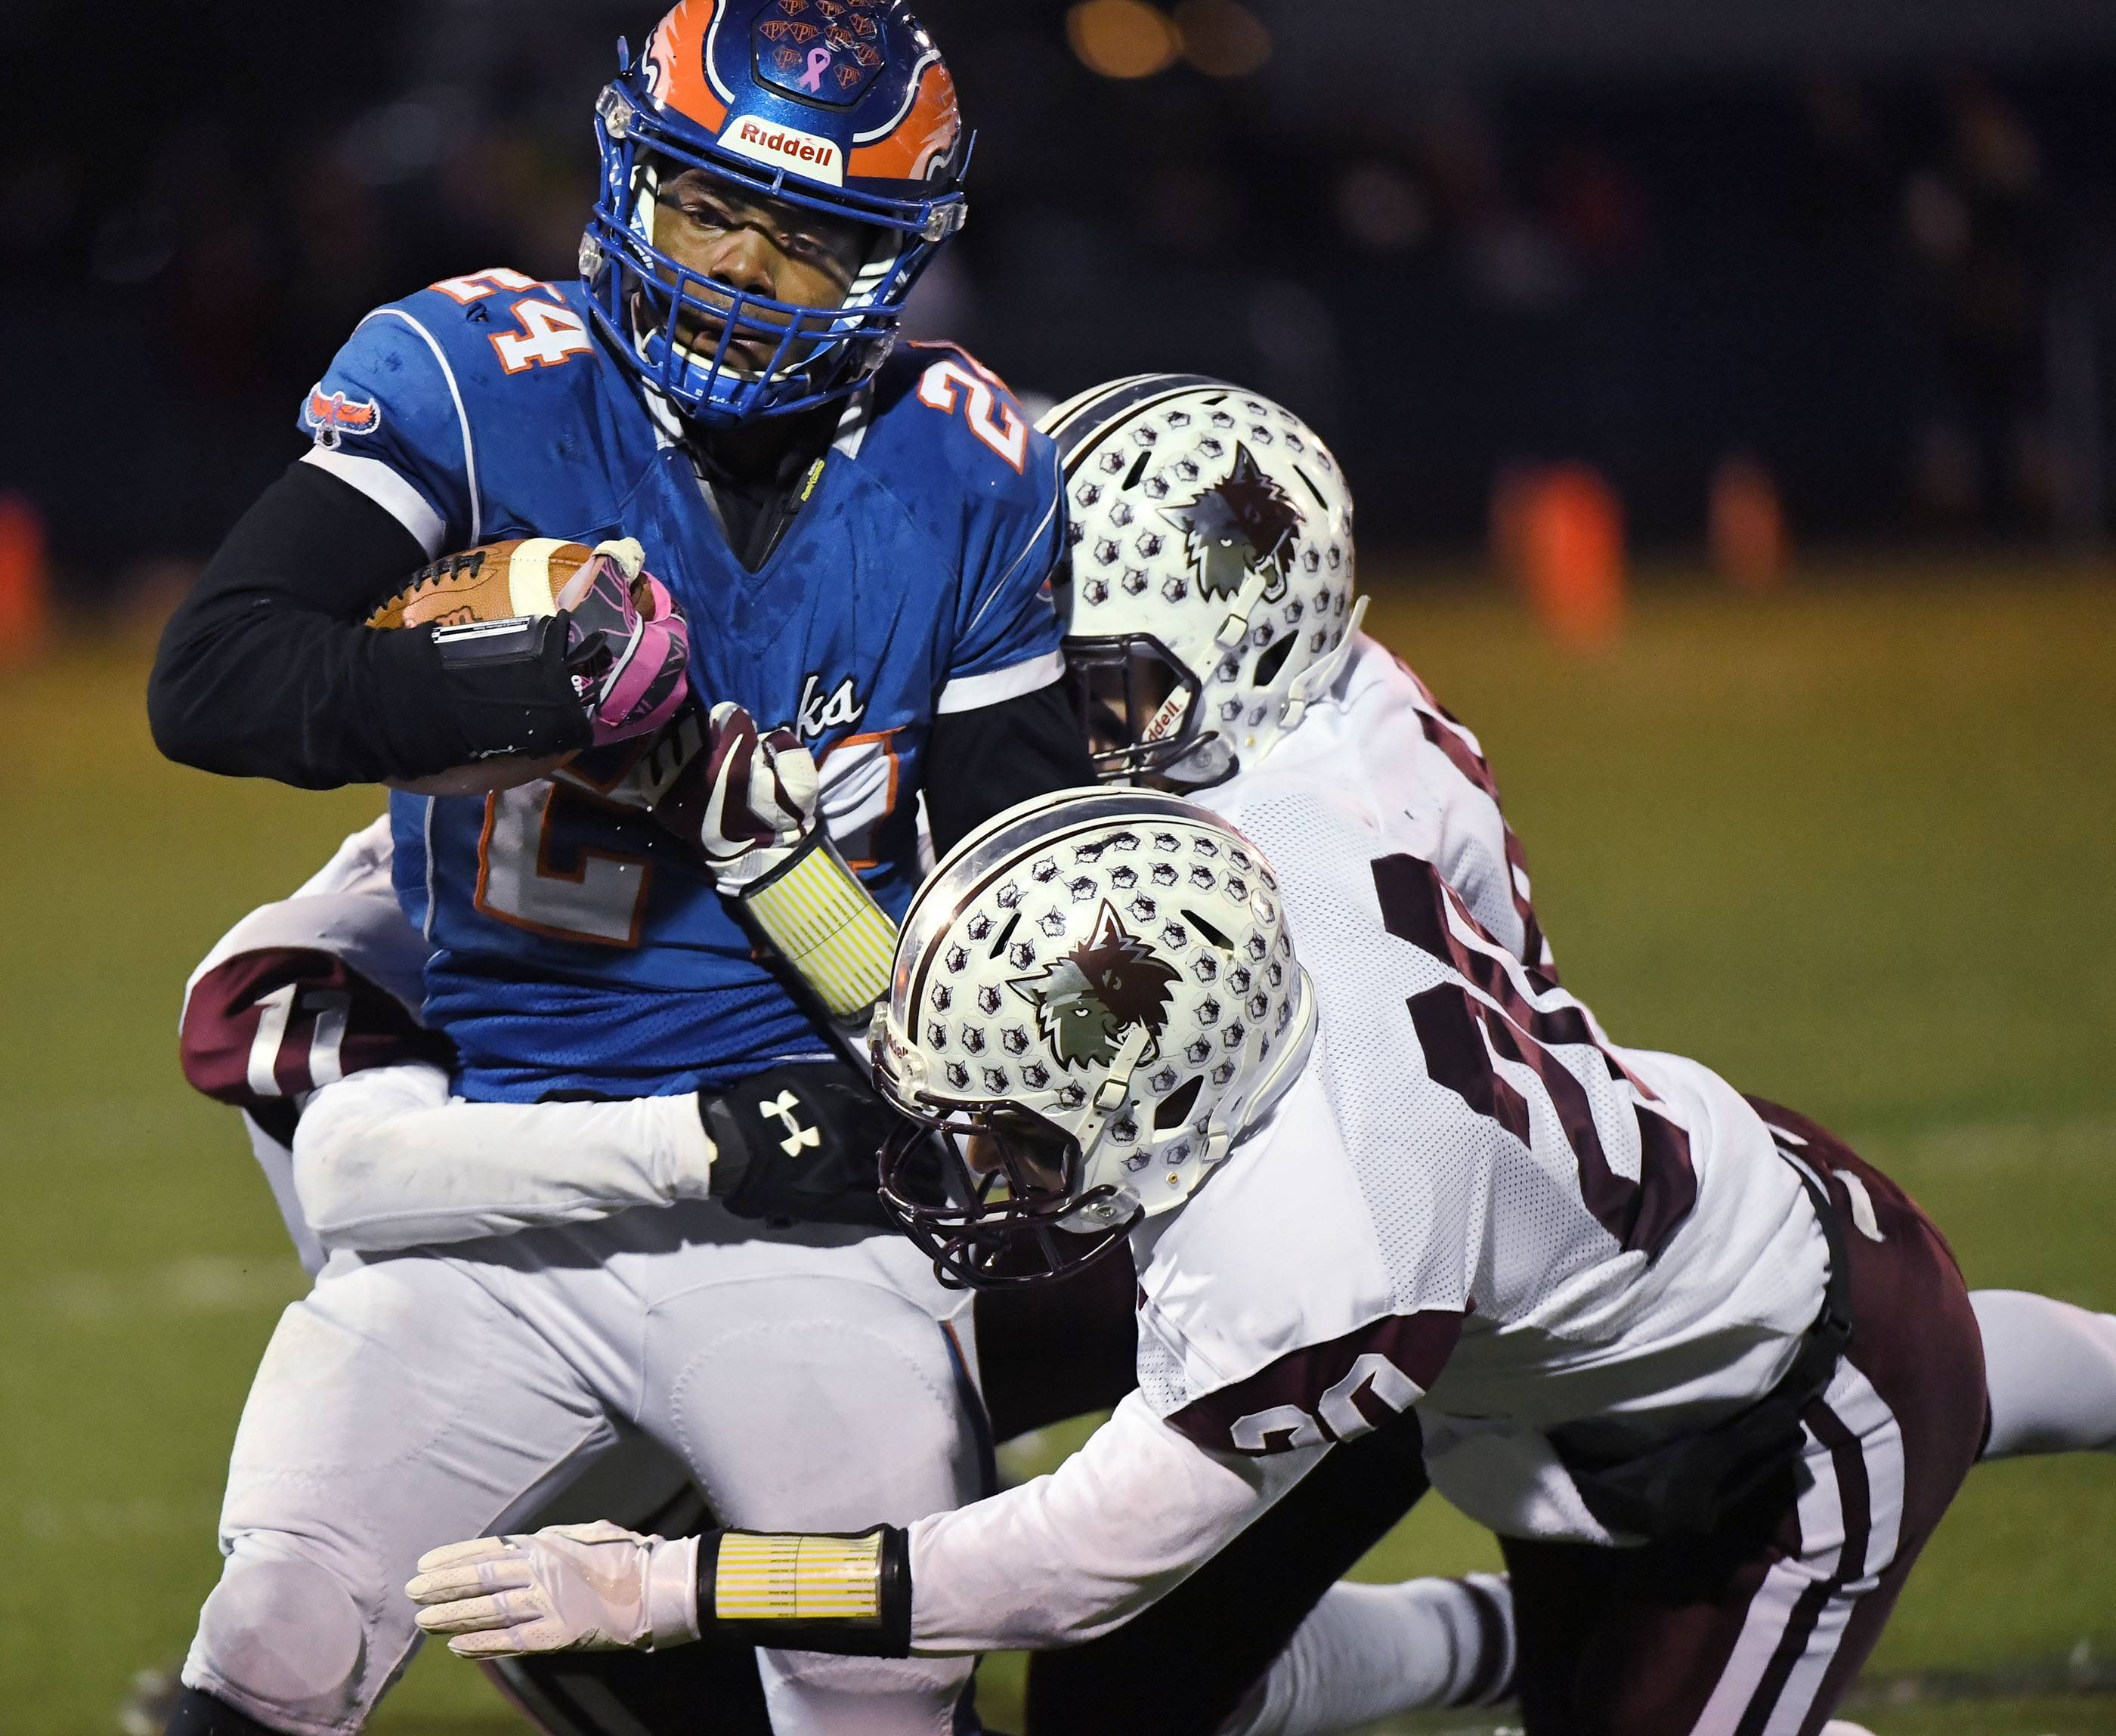 Hoffman Estates' Trevon Hall is brought down by Prairie Ridge's Justin Mikolajczewski, Sam Concialdi and Samson Evans on Saturday in the Class 6A state semifinals at Hoffman Estates.